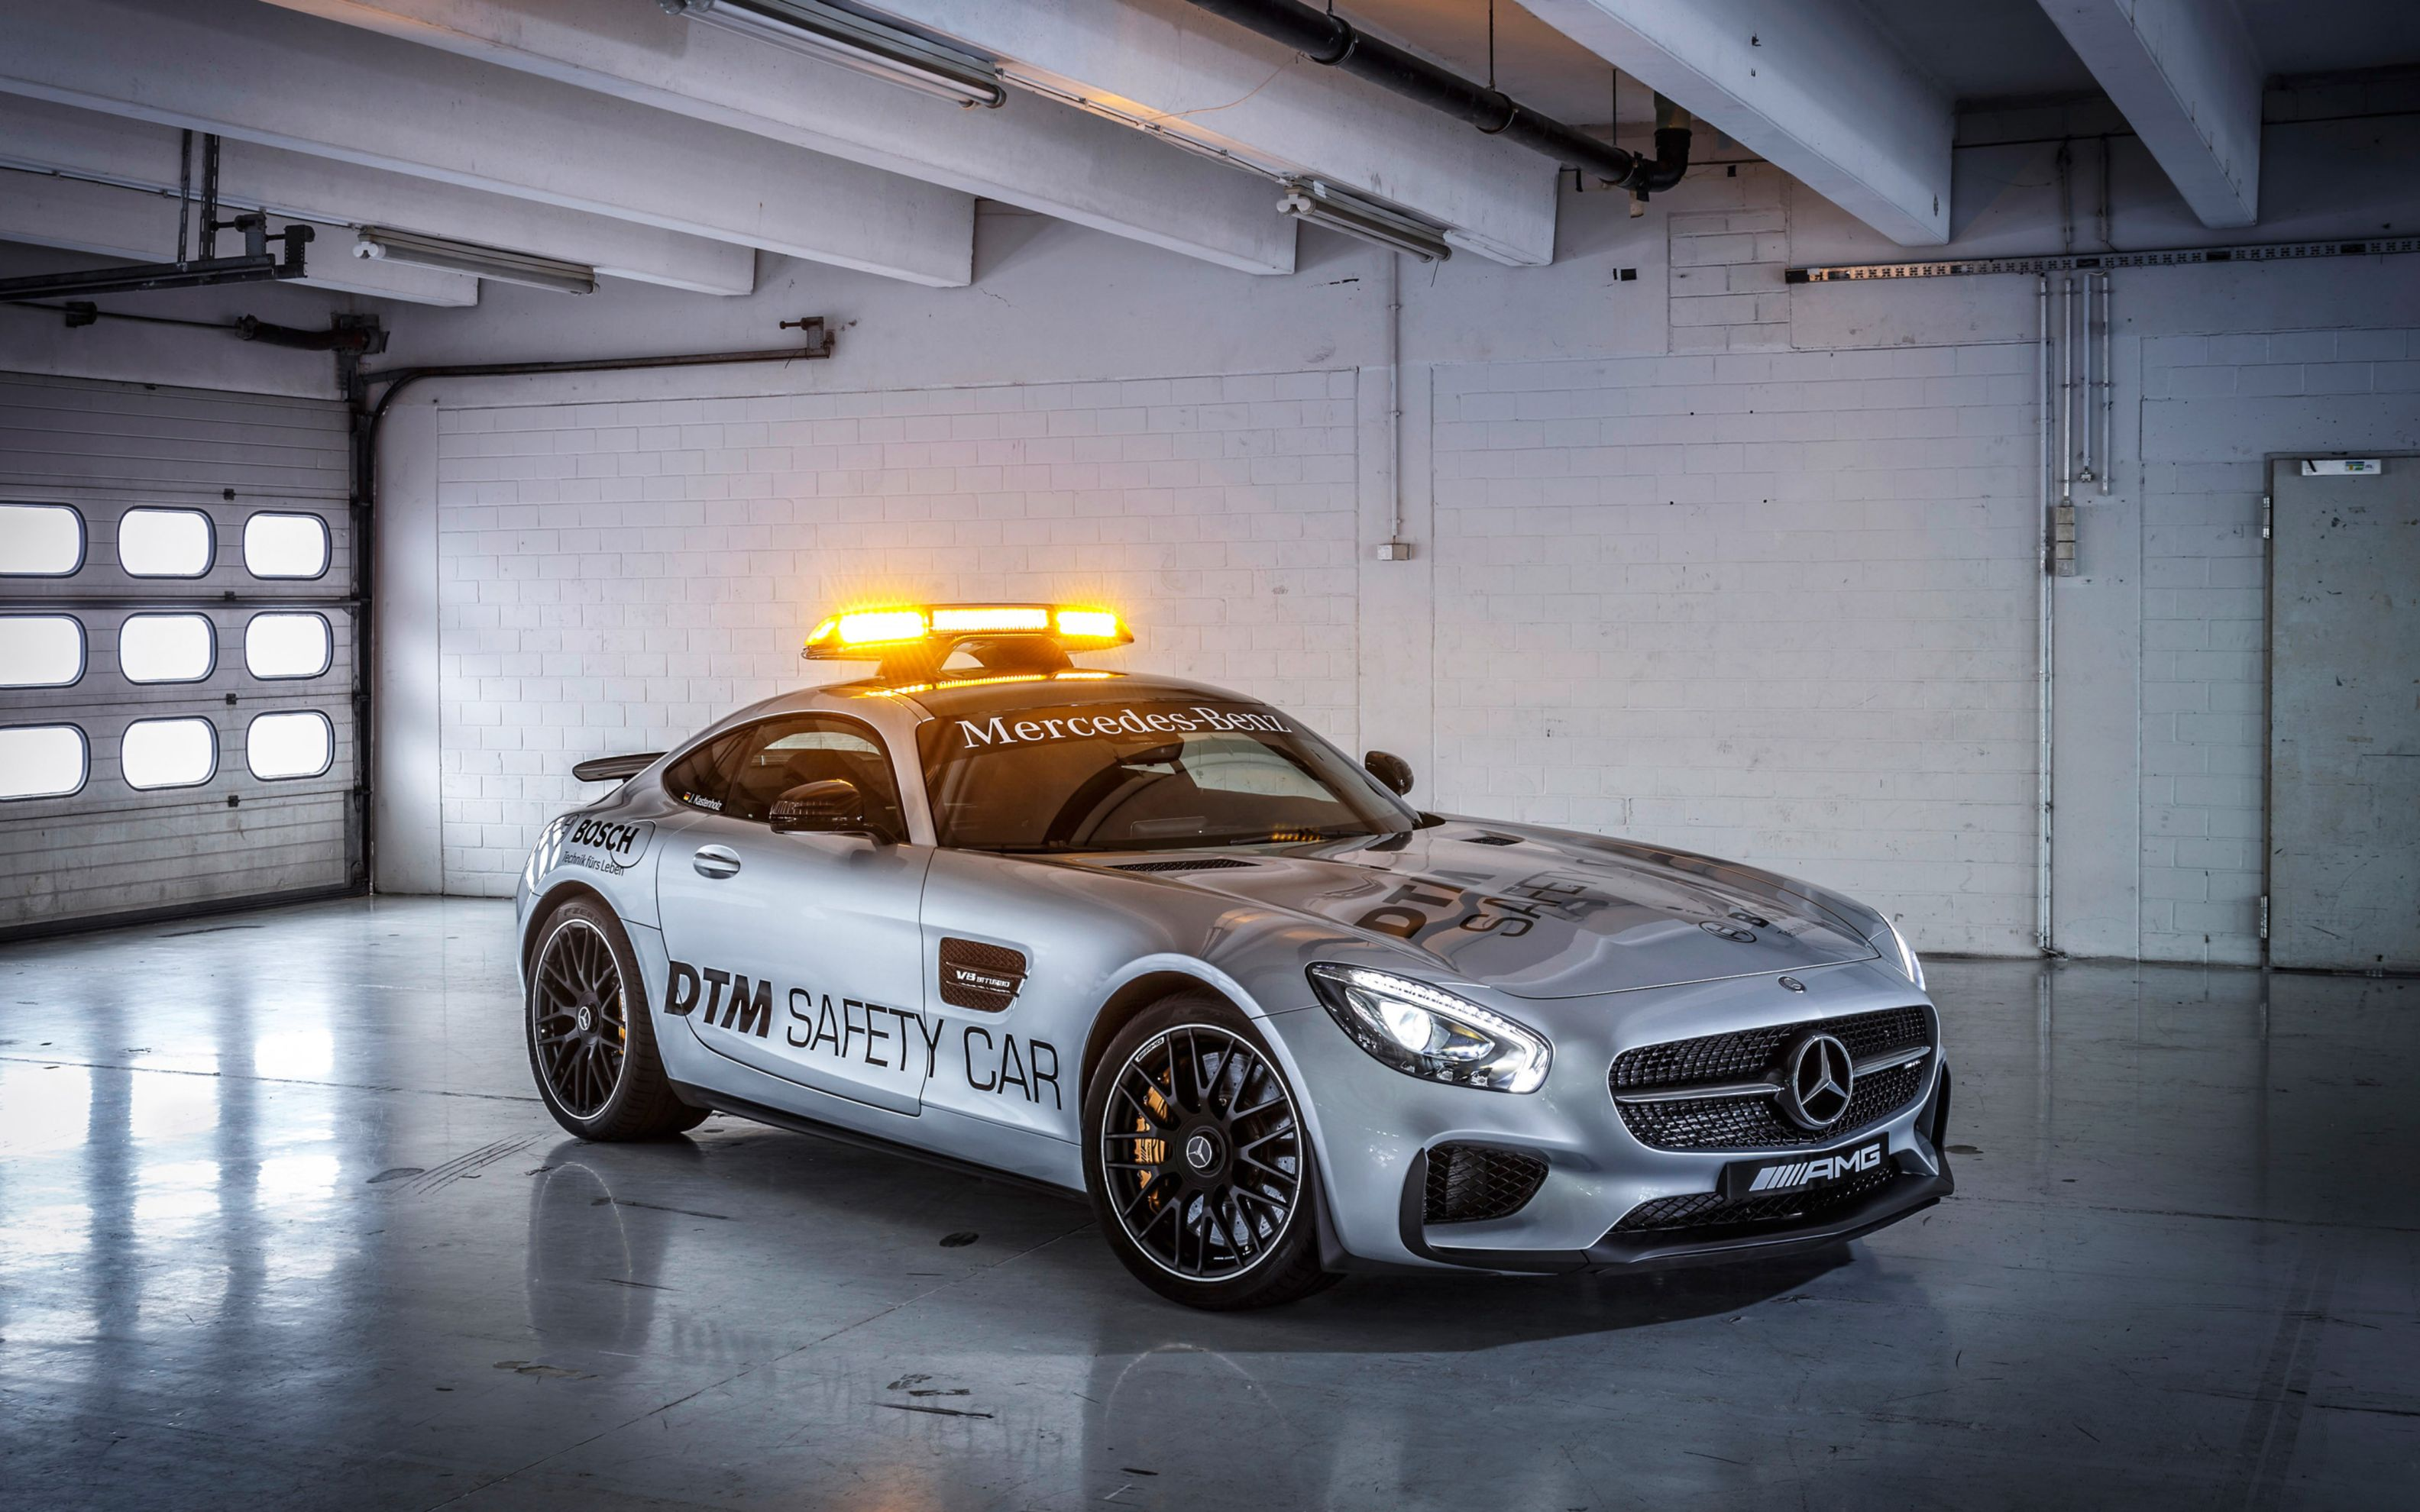 Download free HD 2015 Mercedes Amg Gt S Safety Car Wide Wallpaper, image